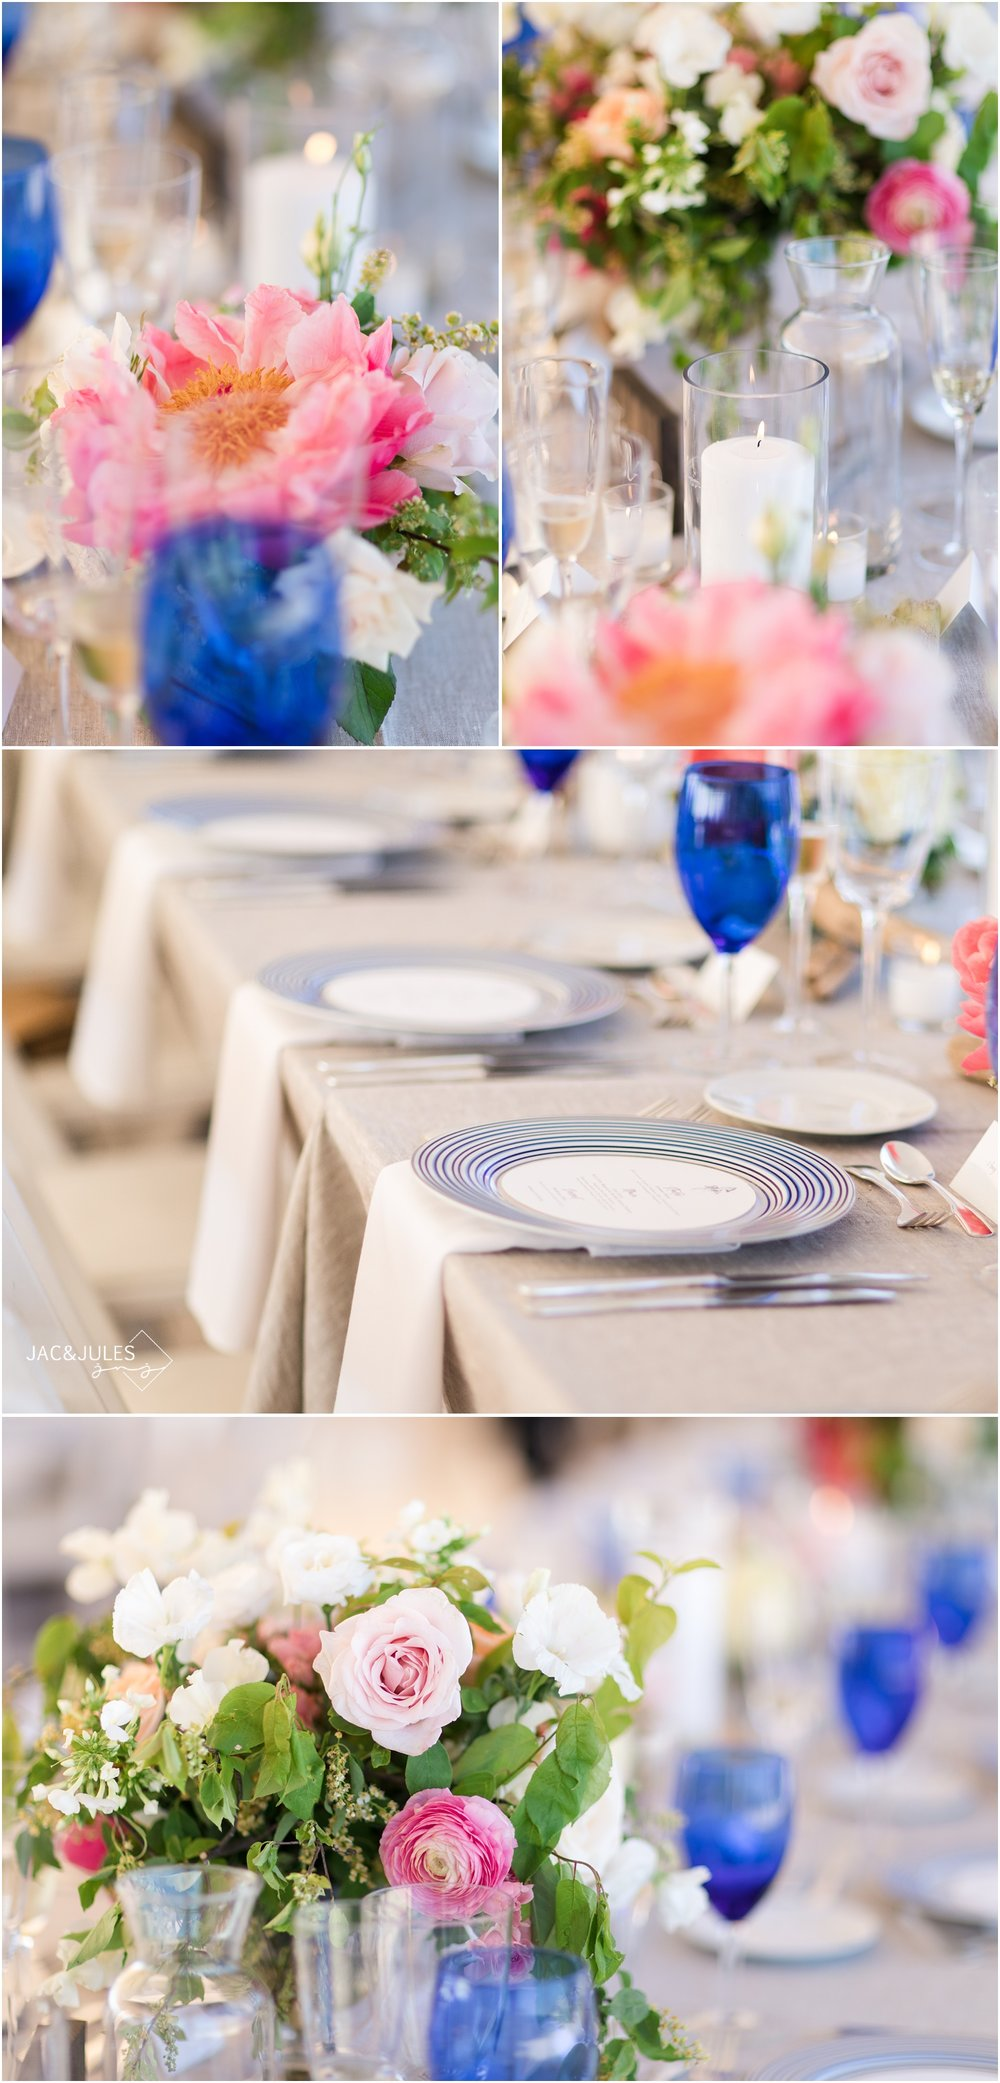 Photos of table settings with blue glassware and floral centerpieces by  Faye & Renee at Mantoloking Yacht Club